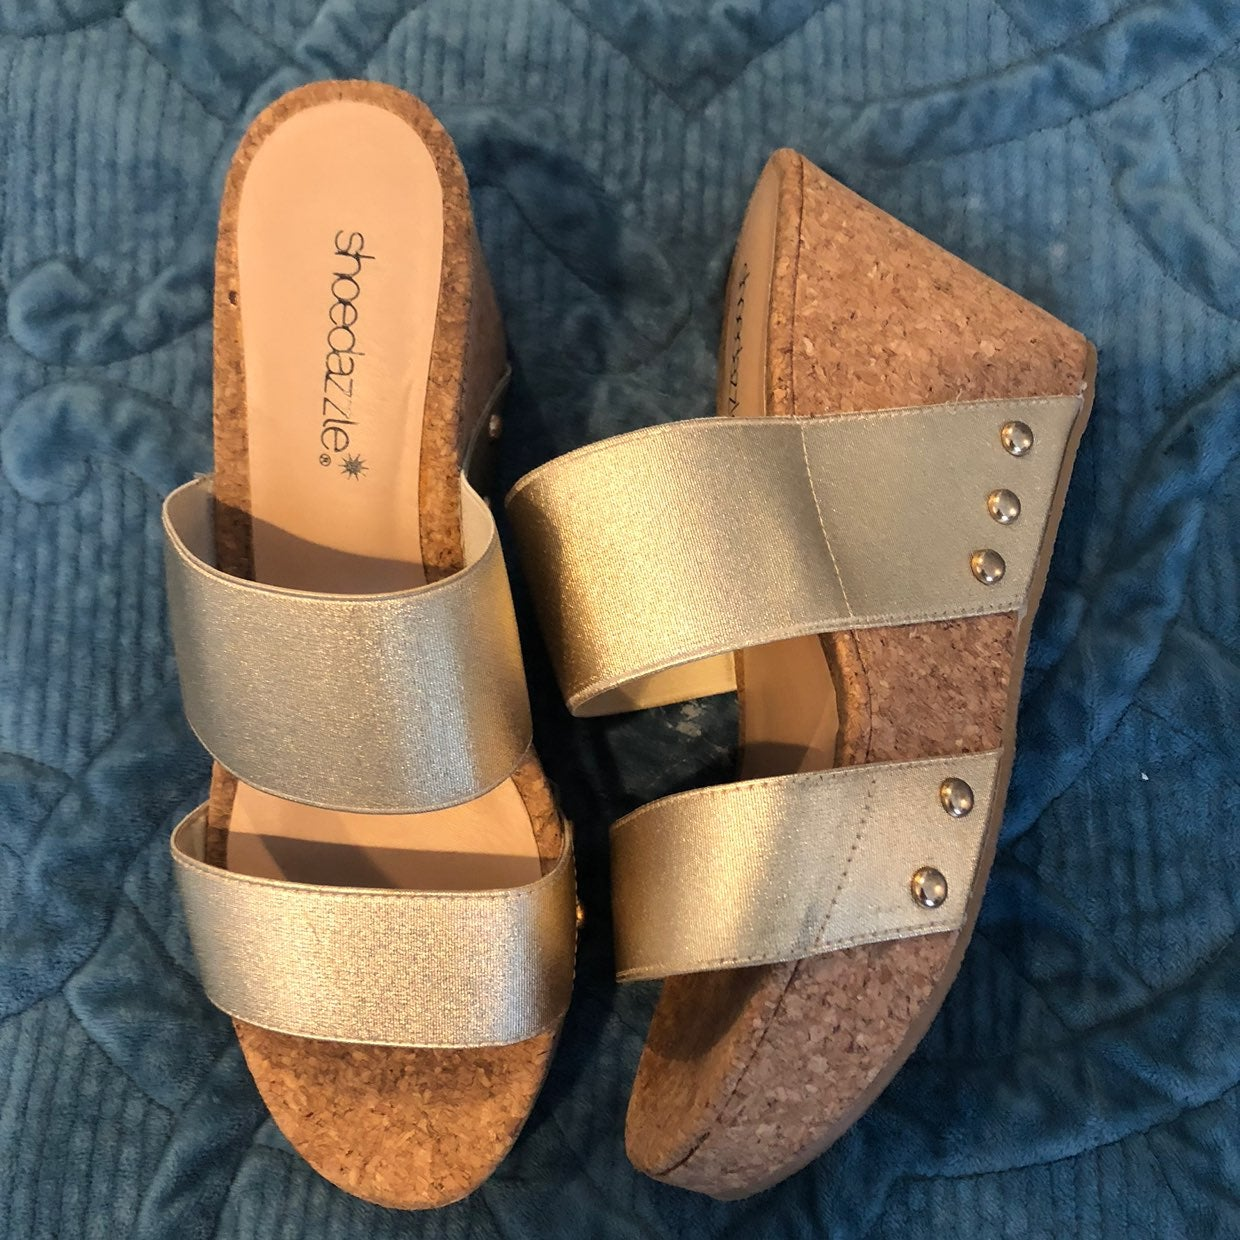 ShoeDazzle Golden Wedge Shoes 7.5